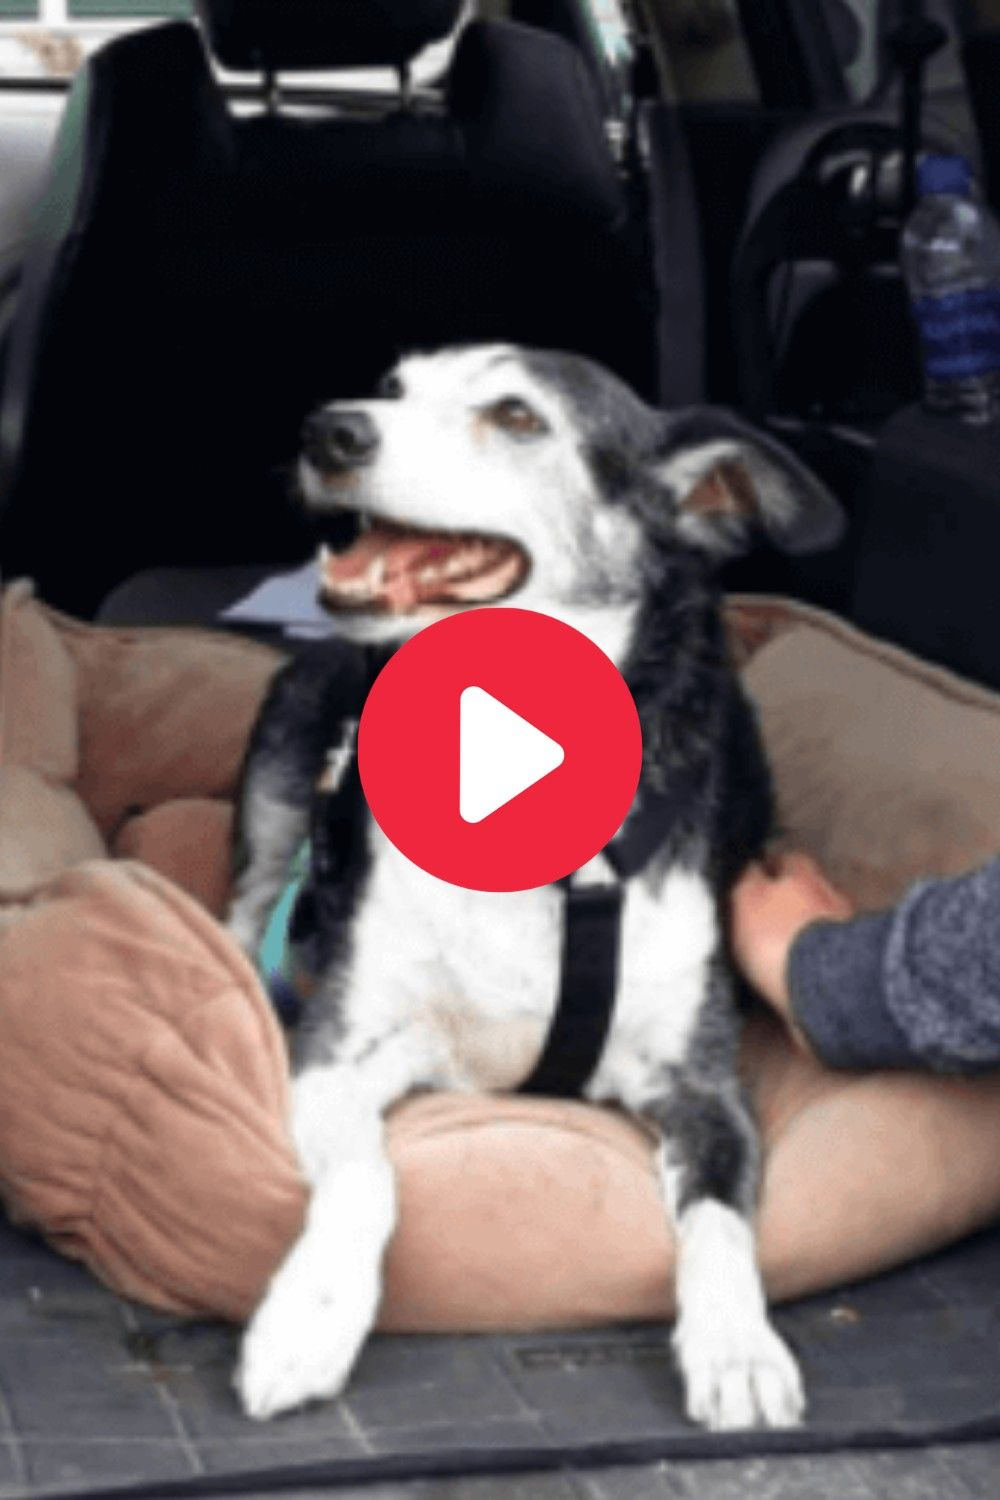 The vehicle was abandoned on the side of the road and the owner was gone. #dogs #dogsoftwitter #dogsofinstagram